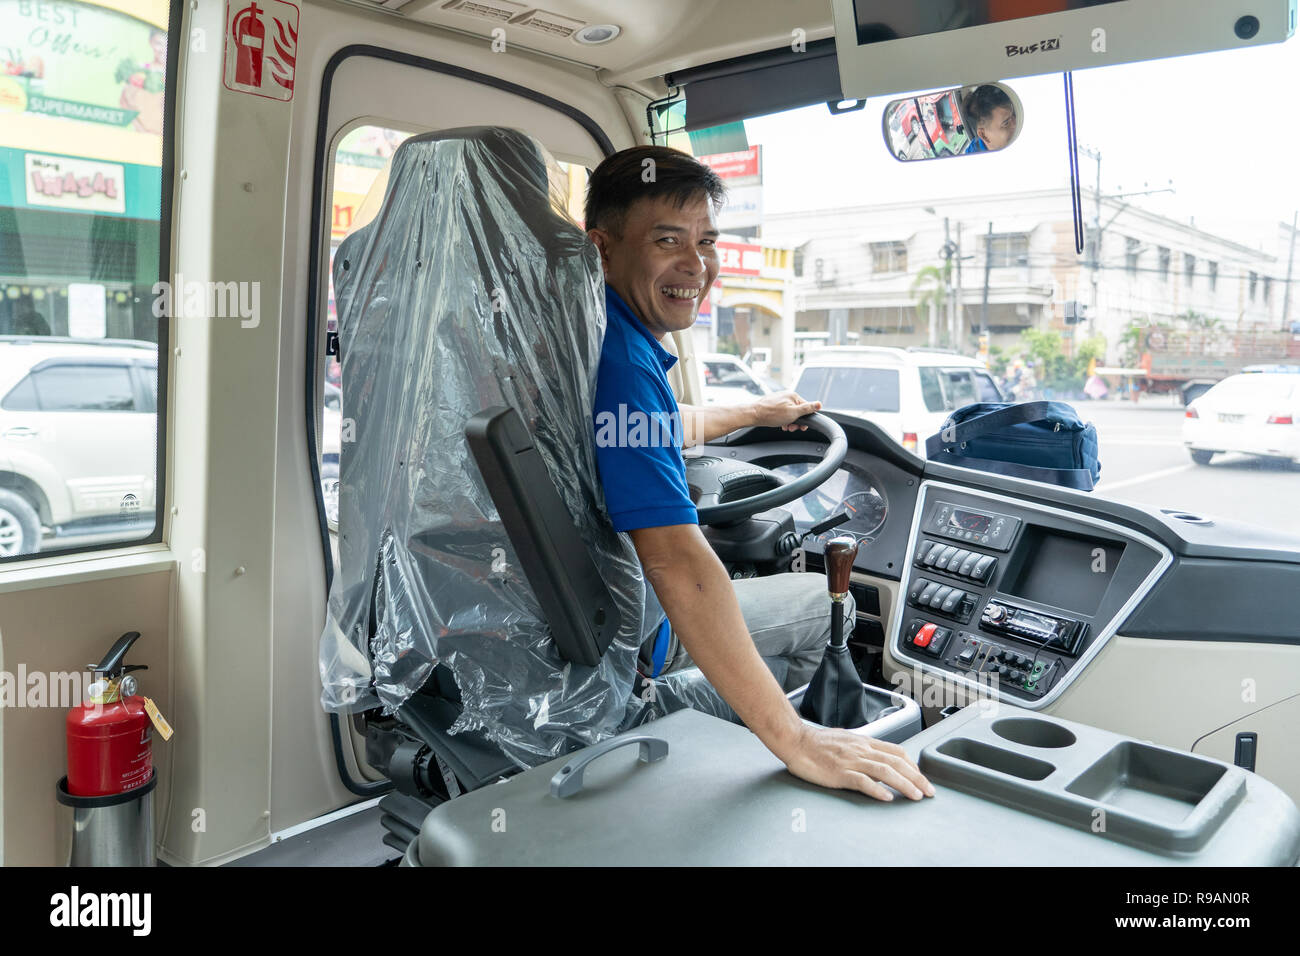 22/12/2018 Cebu City,Philippines.Driver of a new style modern Jeepneys deployed on the roads of Cebu City.Locally known as a 'Beep' they have a seating capacity of 24 passengers, and can accommodate an additional 10 standing. Each is equipped with free wifi, dashcam, and a closed circuit television (CCTV) camera.Starting in January 2018 the Department of Transportation (DOTr) in the Philippines started to remove jeepneys older than 15 years  as part of the government's transport modernization program. - Stock Image